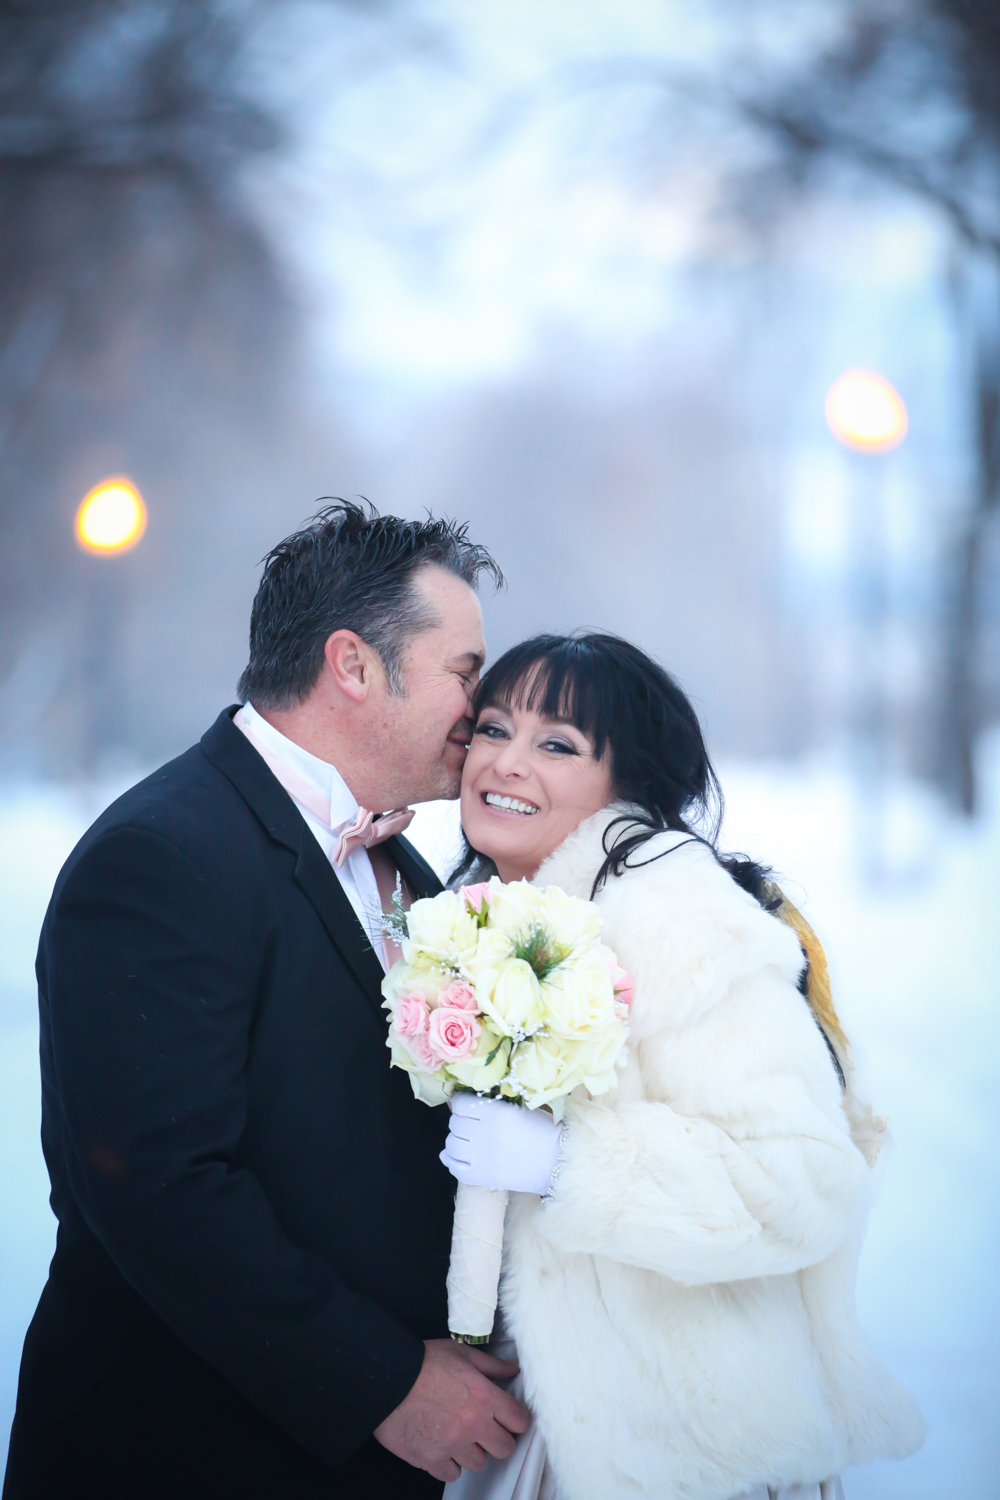 Winter wedding at the Daly Mansion-6198.jpg